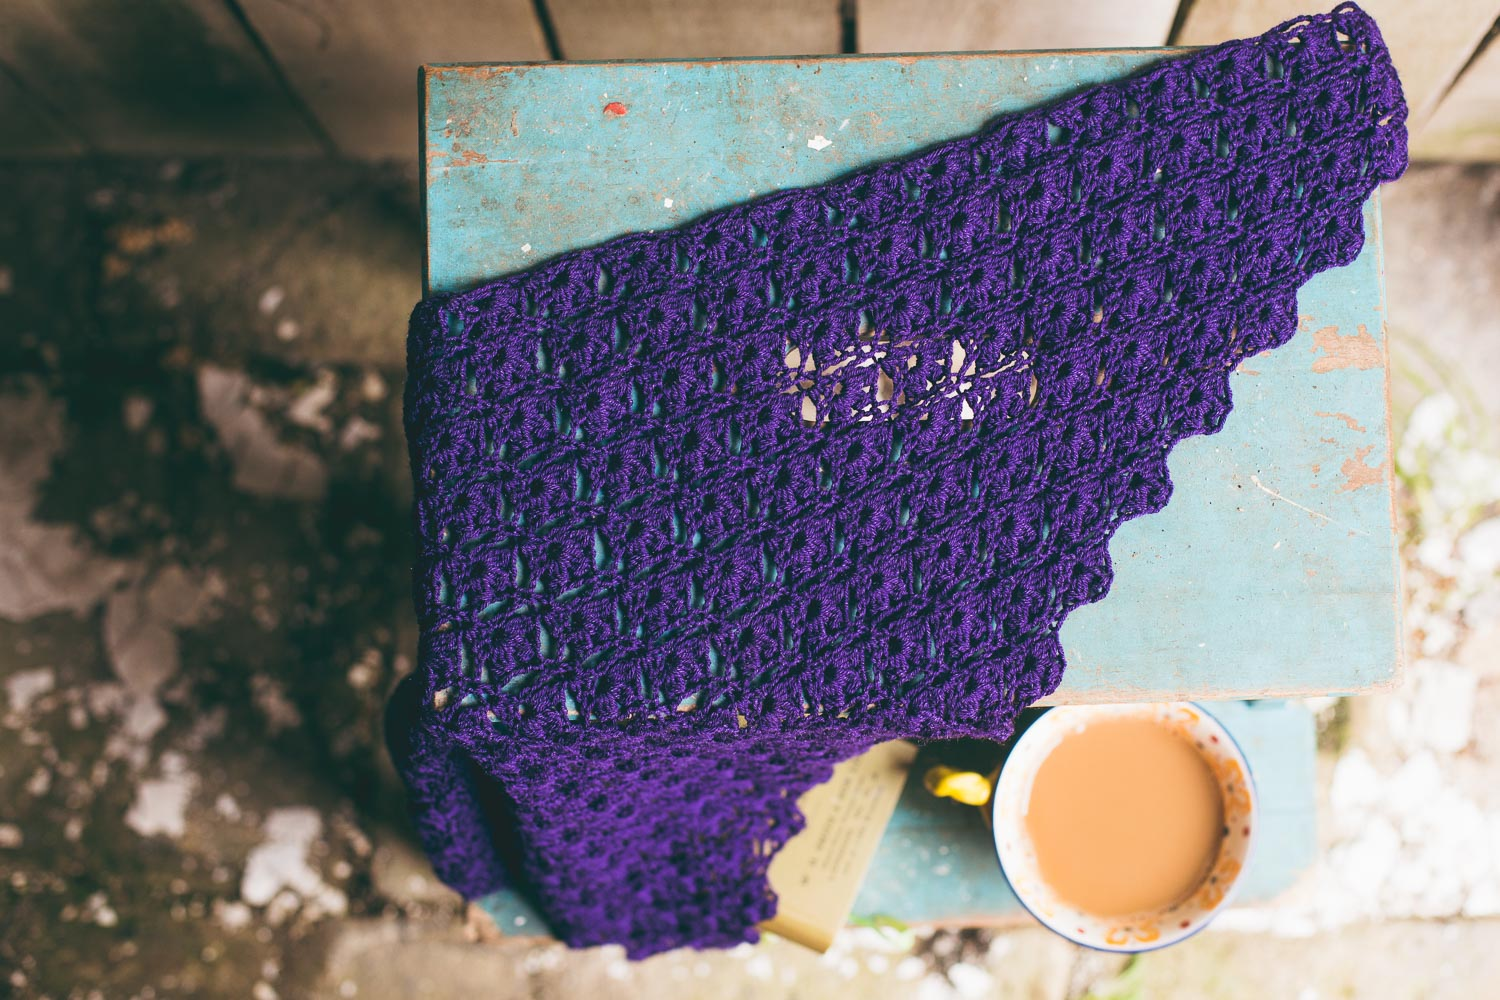 Acer by Joanne Scrace - Coming Soon to The Crochet Project